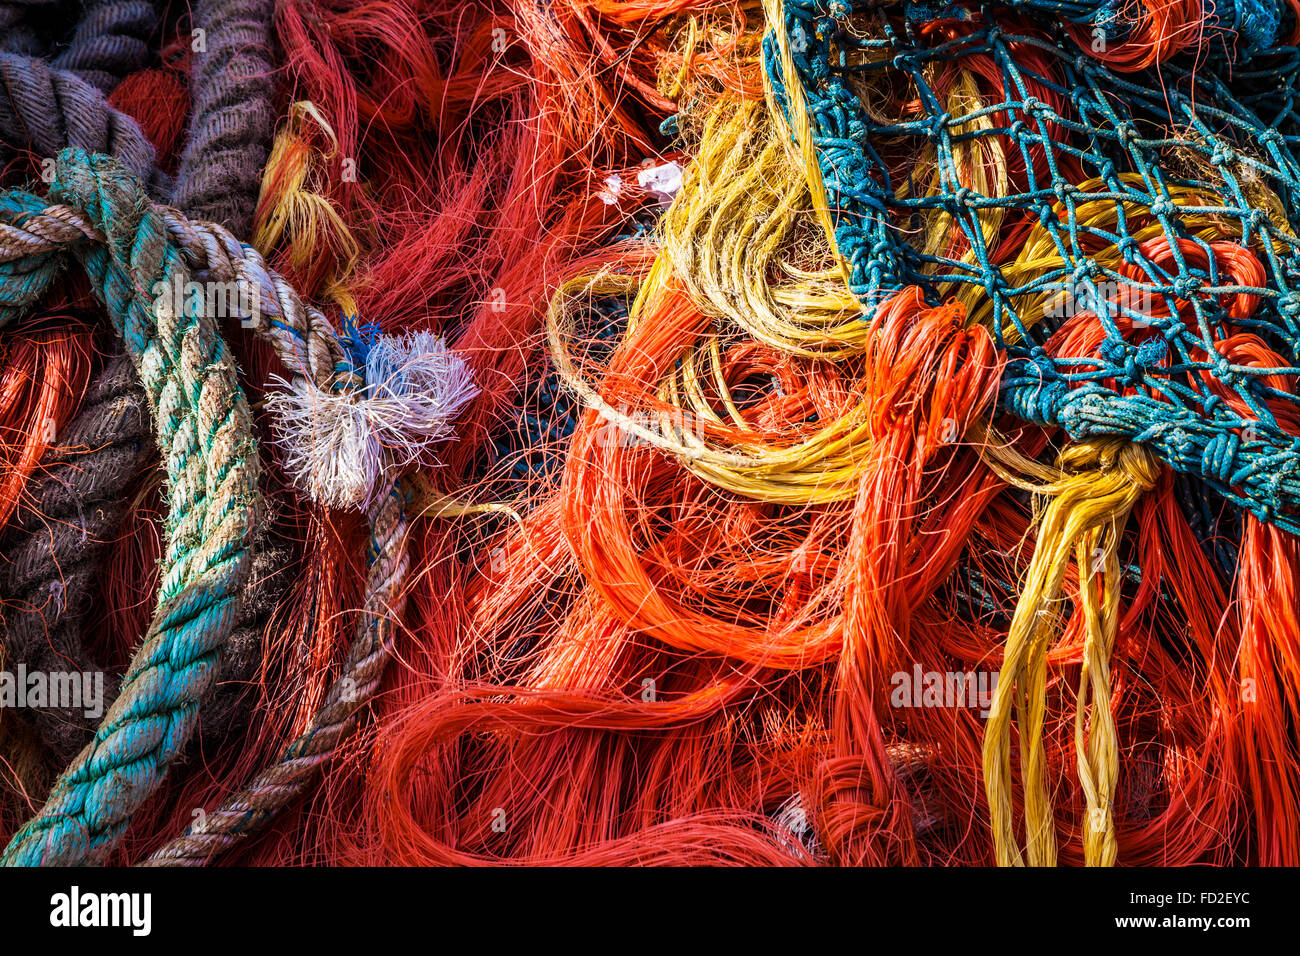 An abstract image of blue and orange fishing nets and ropes. - Stock Image